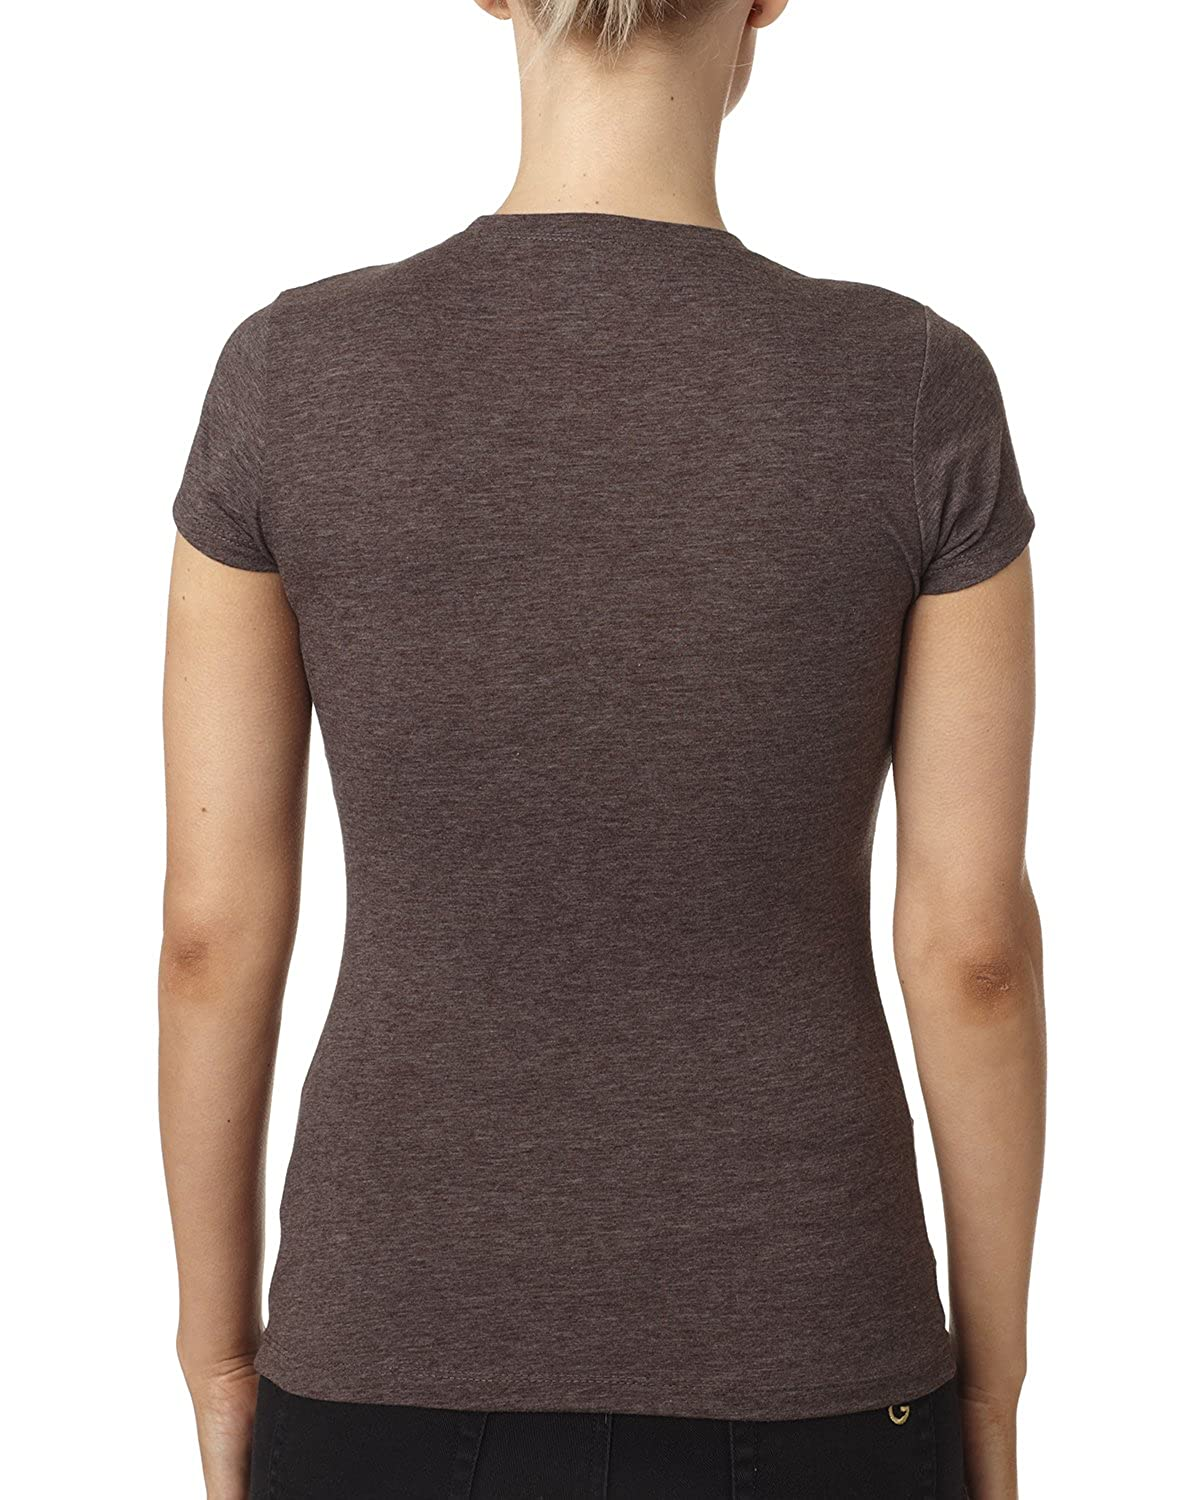 9e32dcfe4f12d Women's cotton/polyester t-shirt.